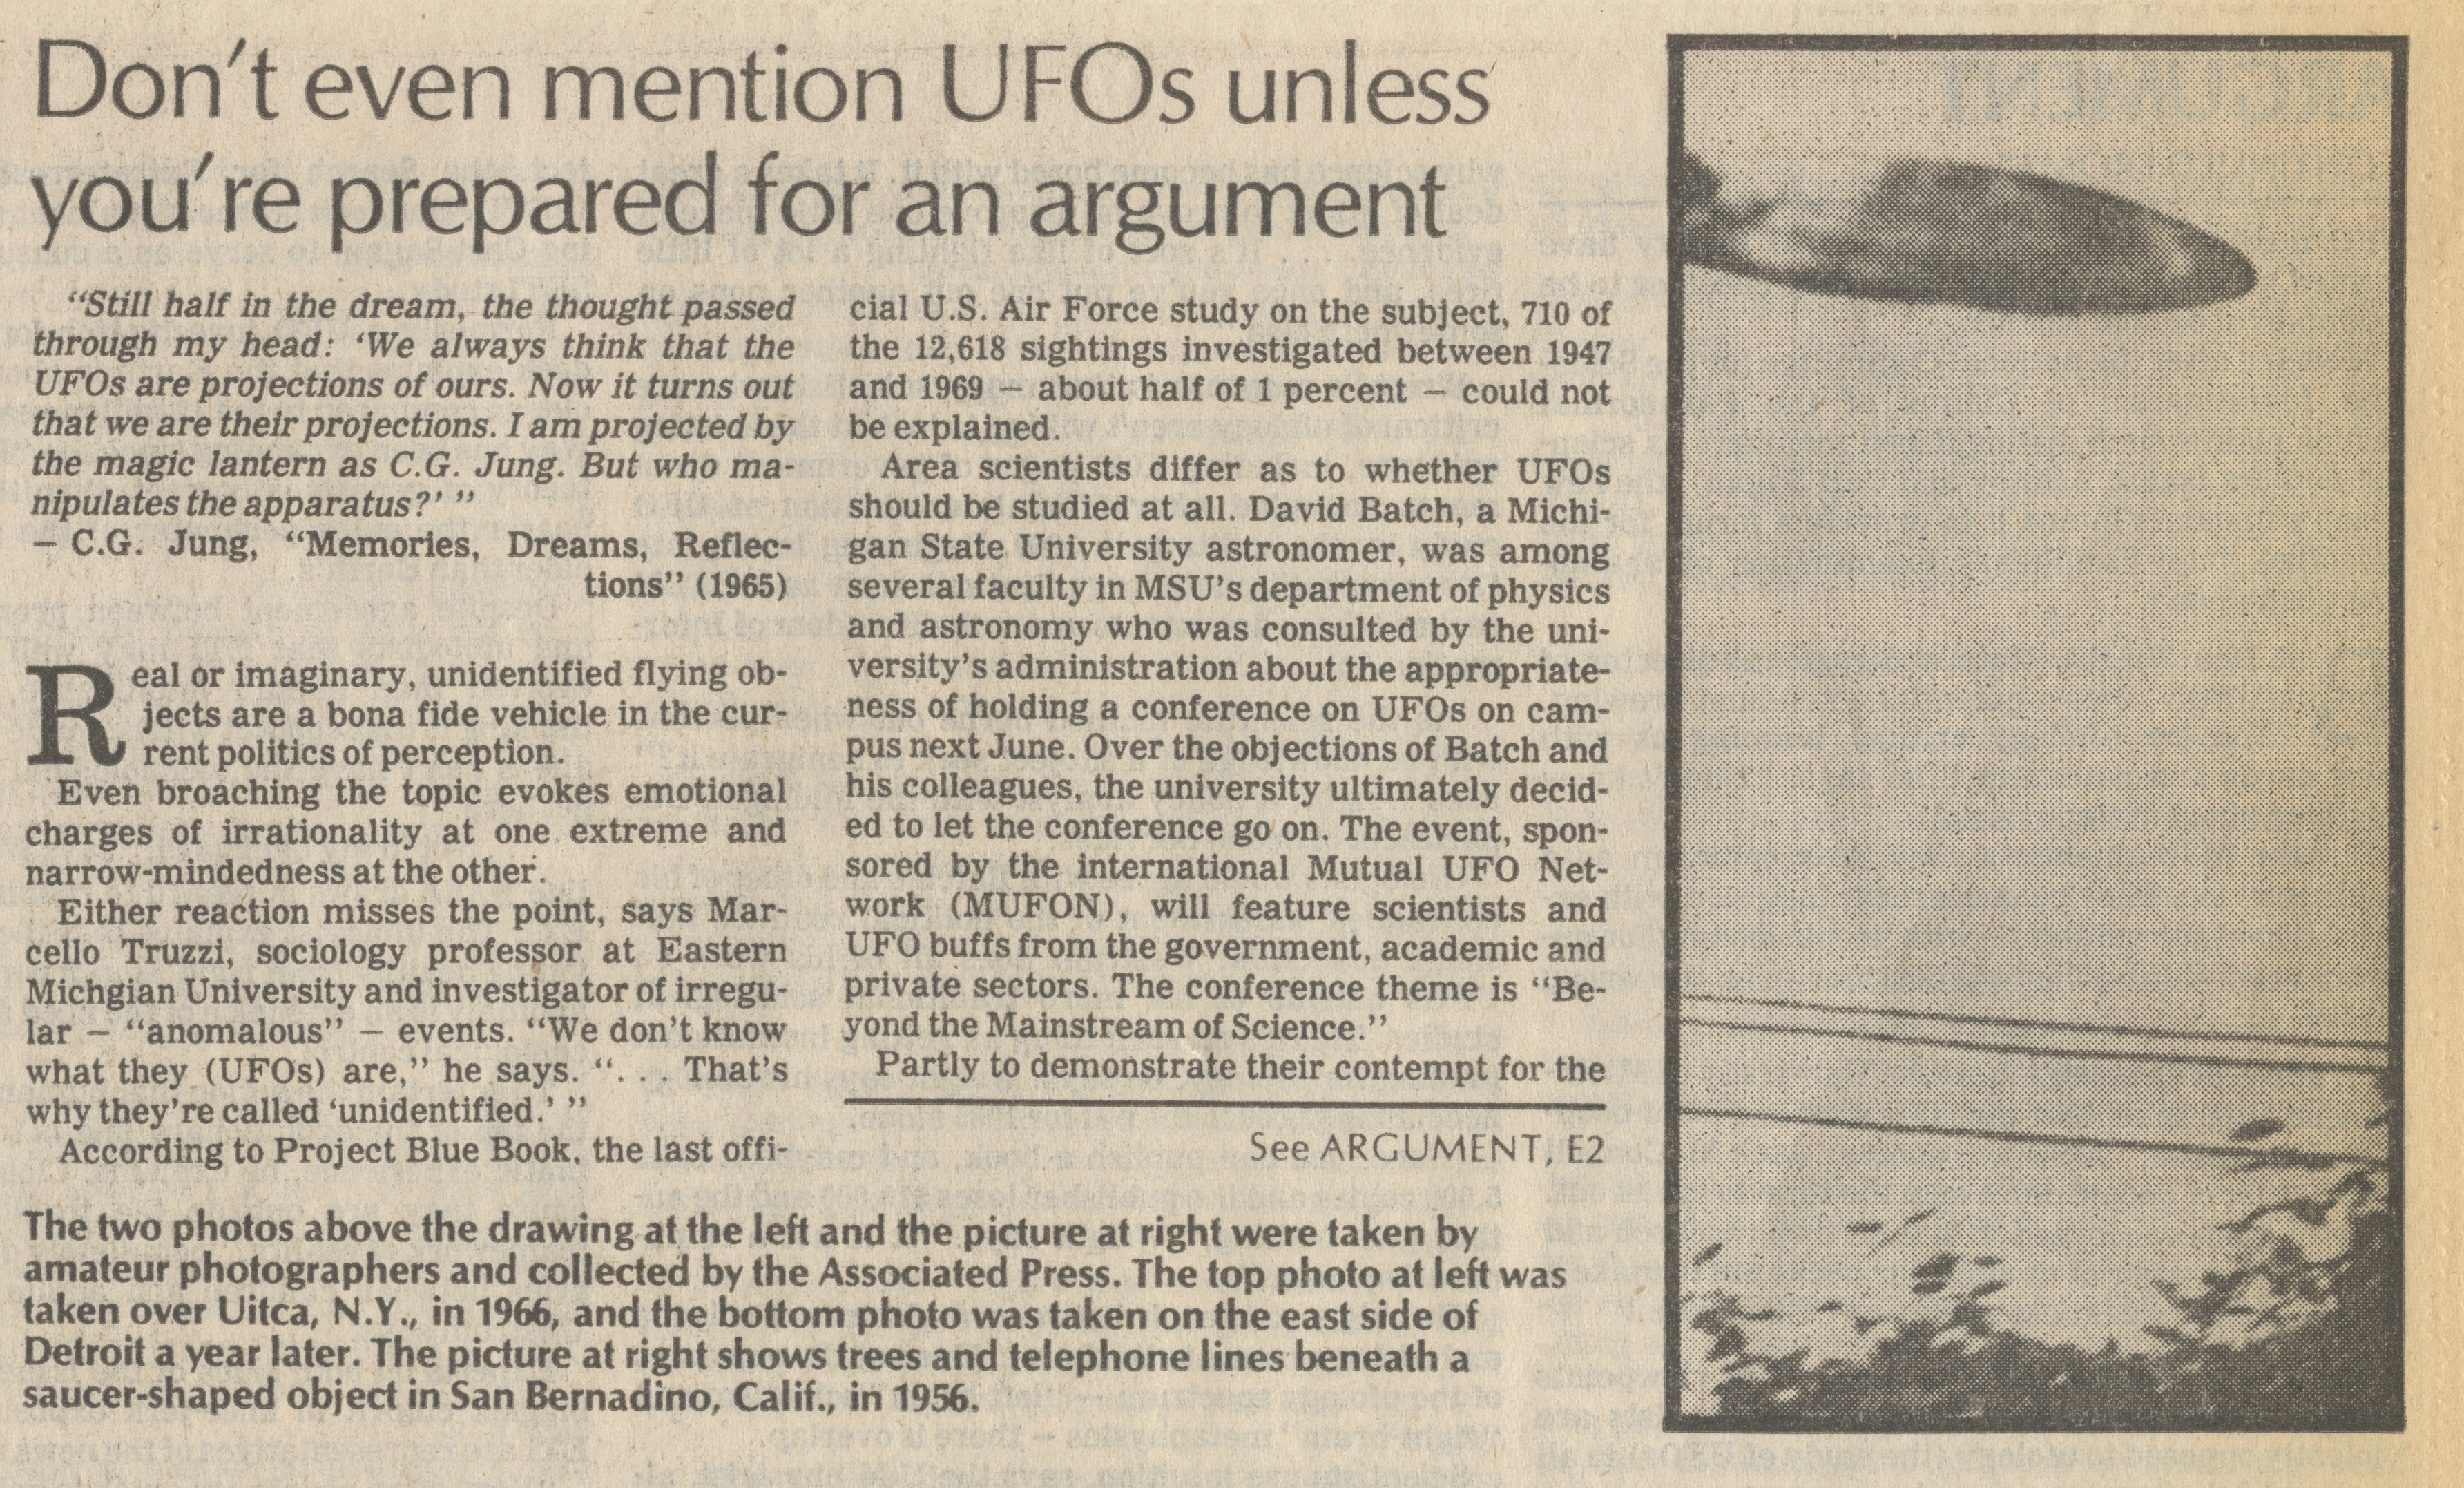 Don't Even Mention UFOs Unless You're Prepared For an Argument image